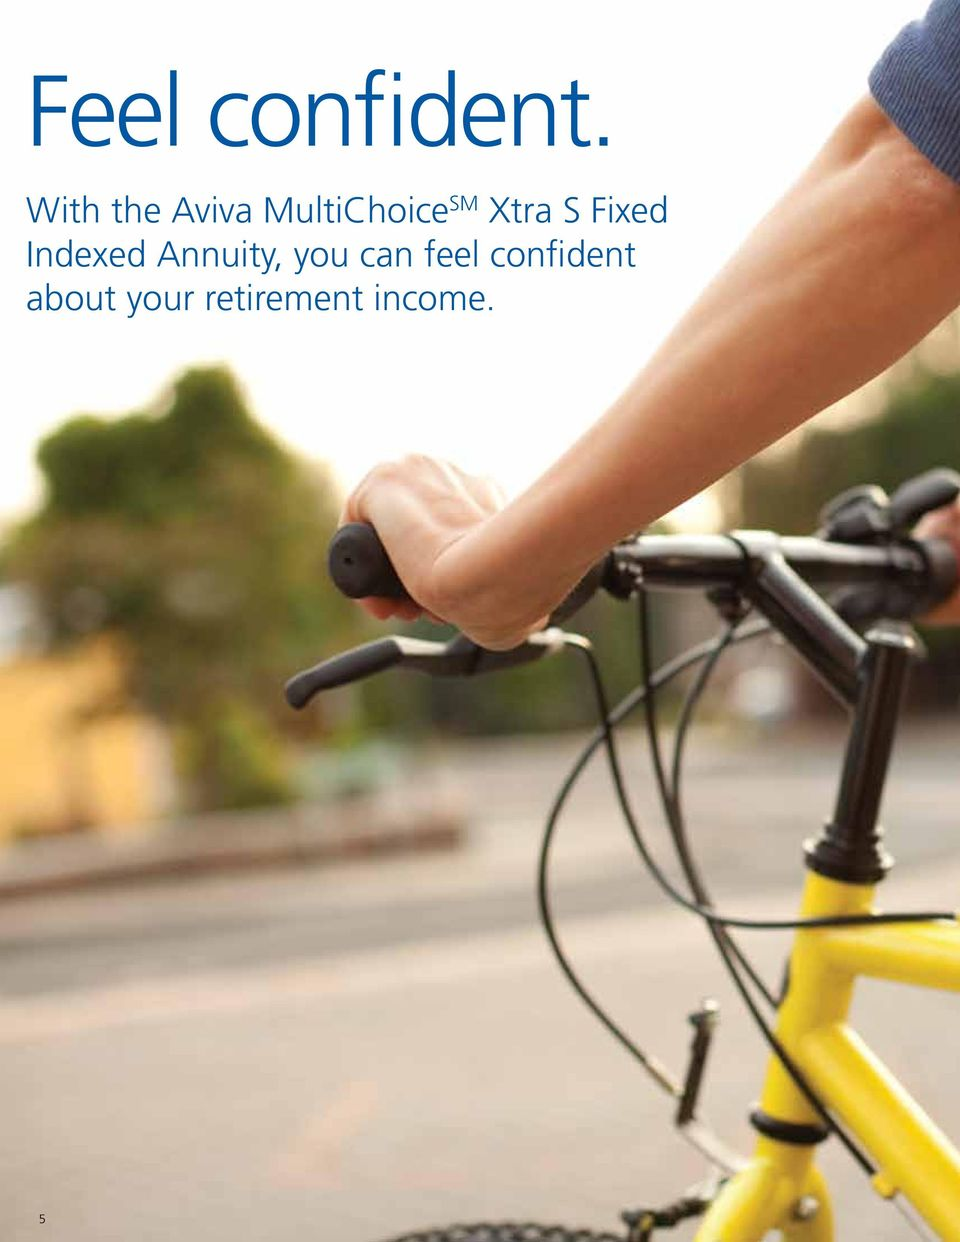 Xtra S Fixed Indexed Annuity,